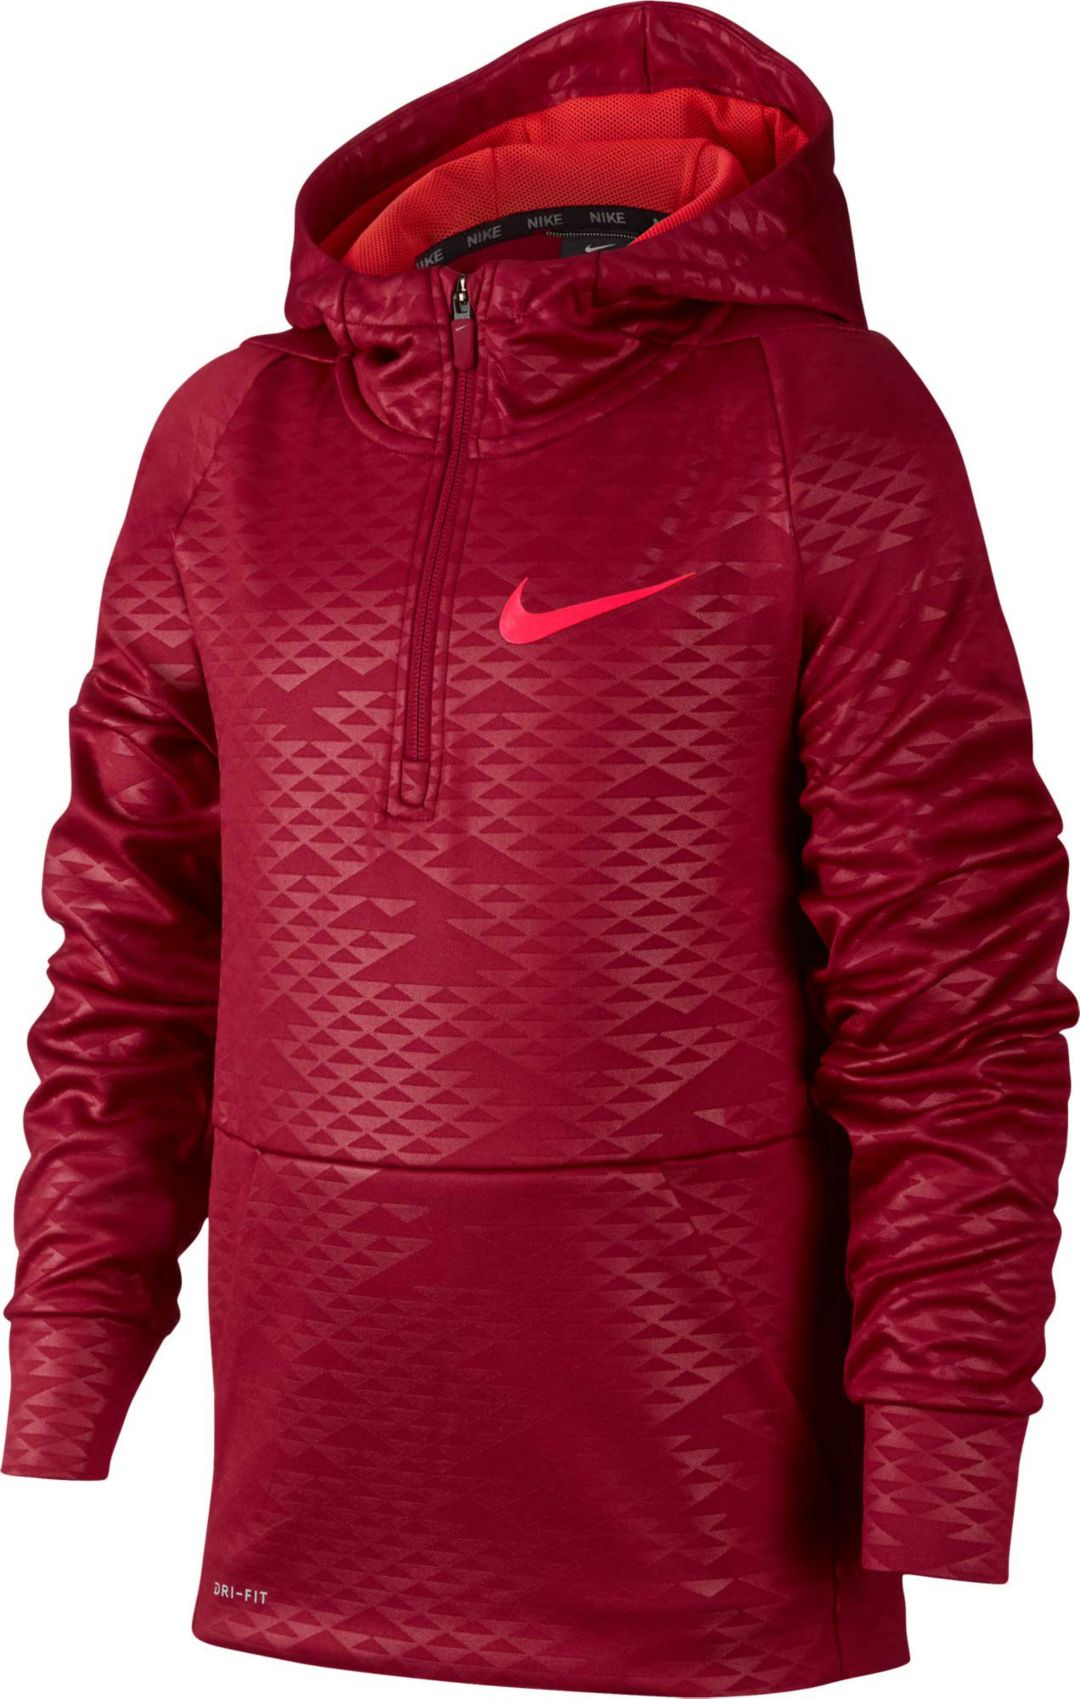 7a434873c1 Nike Boys' Therma Embossed 1/2 Zip Hoodie | DICK'S Sporting Goods